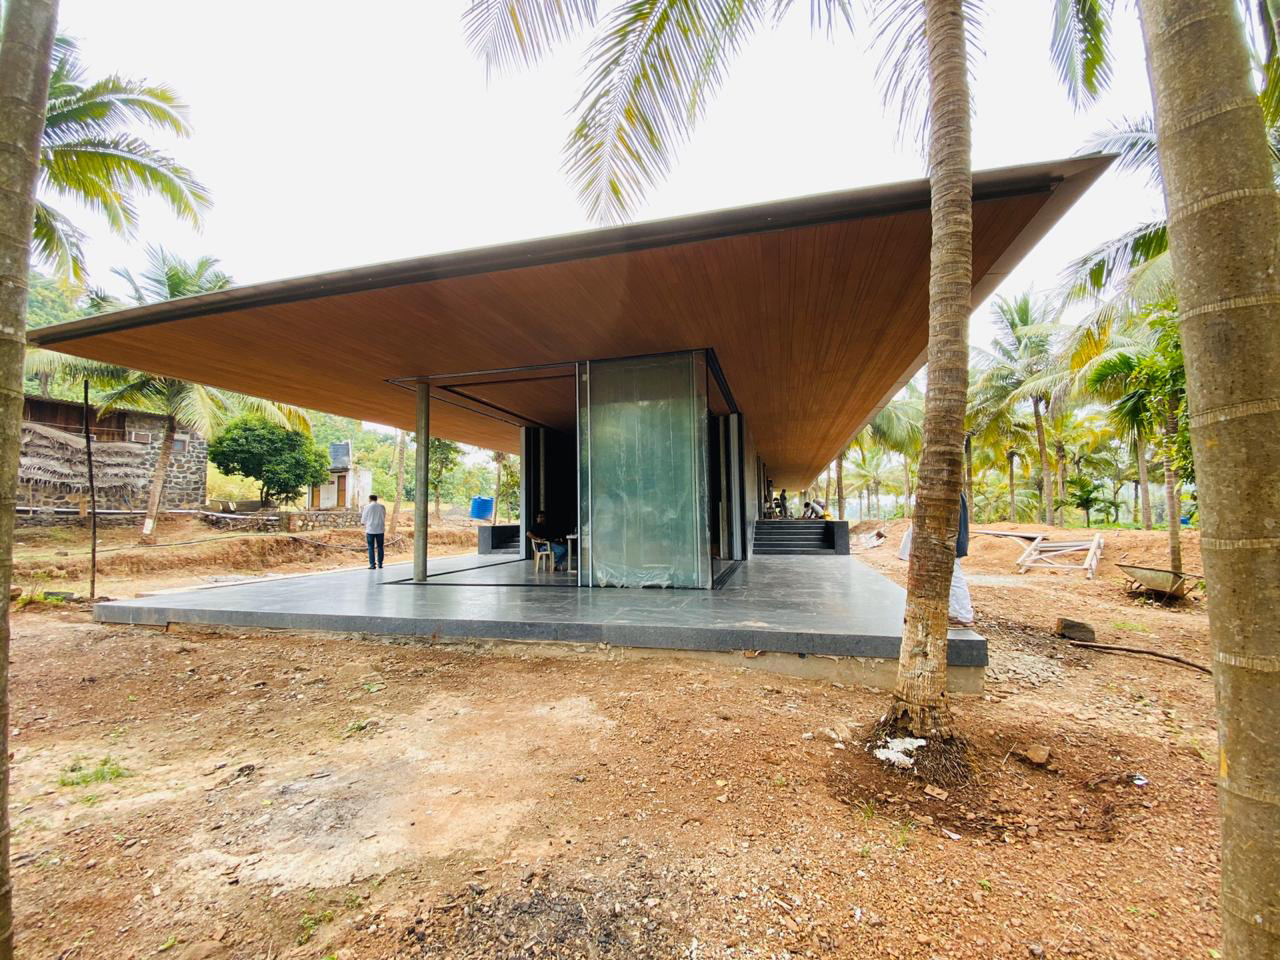 The house's roof covered in wood, floor finished in granite stone | Parikrama House | SPASM Design Architects | STIRworld